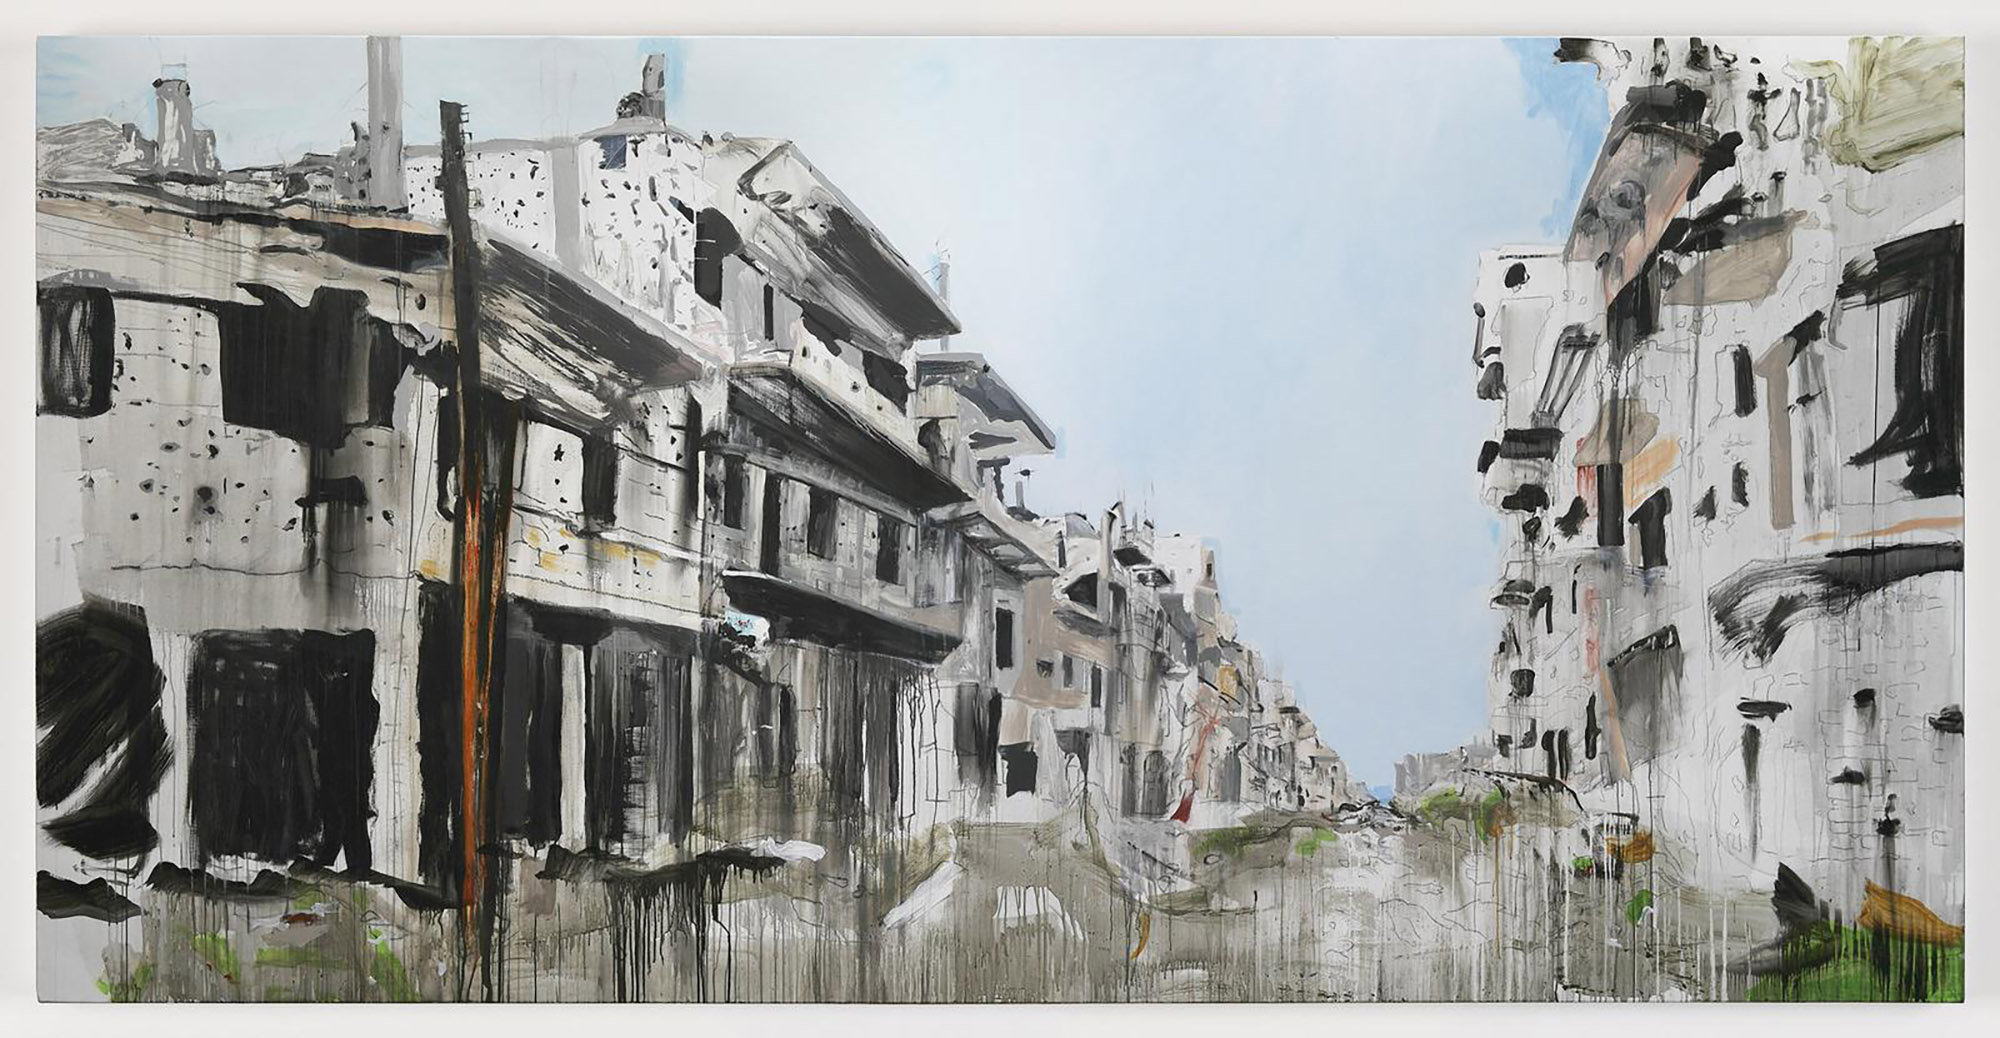 Aleppo 4 , 2017, acrylic on linen, 400 x 200 cm. Photo credit:  Kerlin Gallery